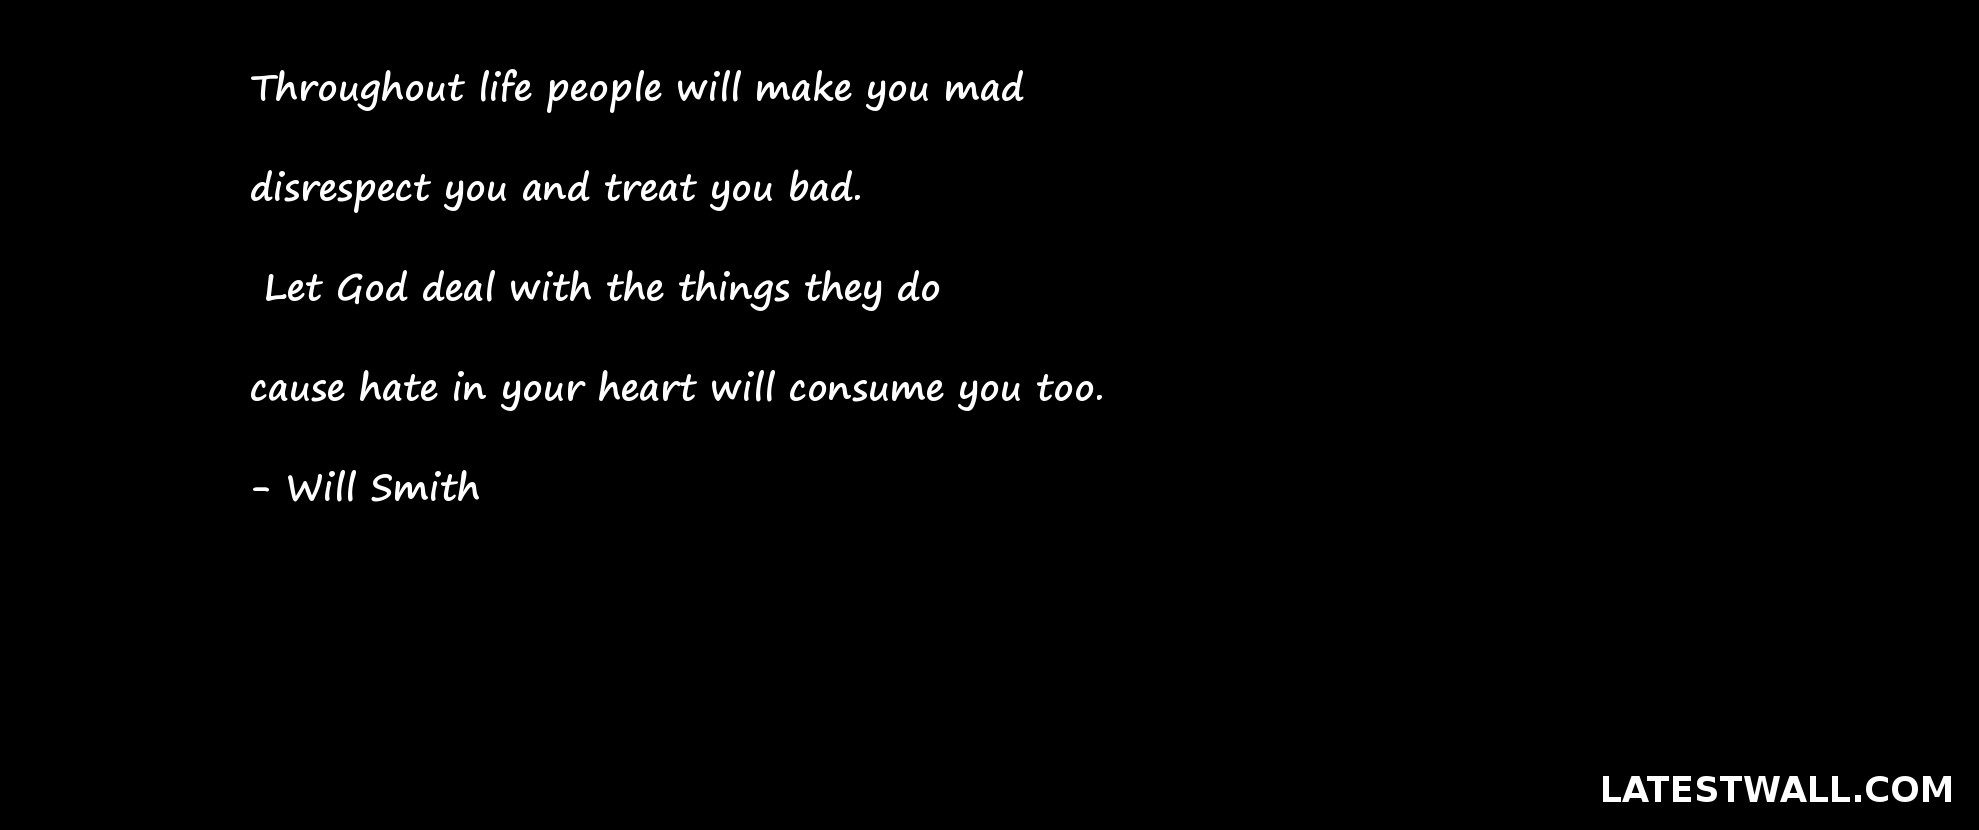 Throughout life people will make you mad